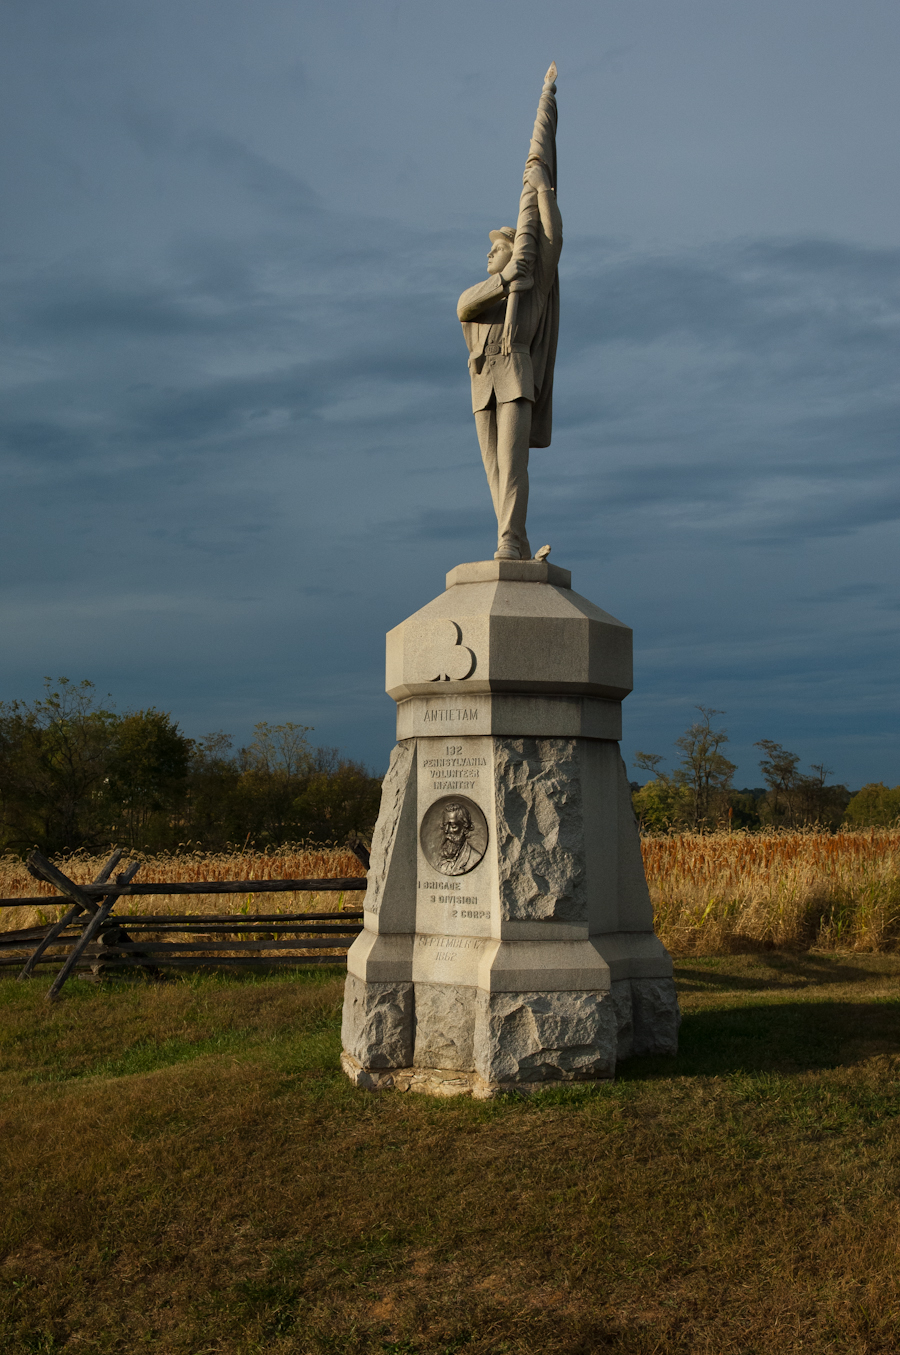 132 Pennsylvania Volunteer Infantry Monument, Antietam National